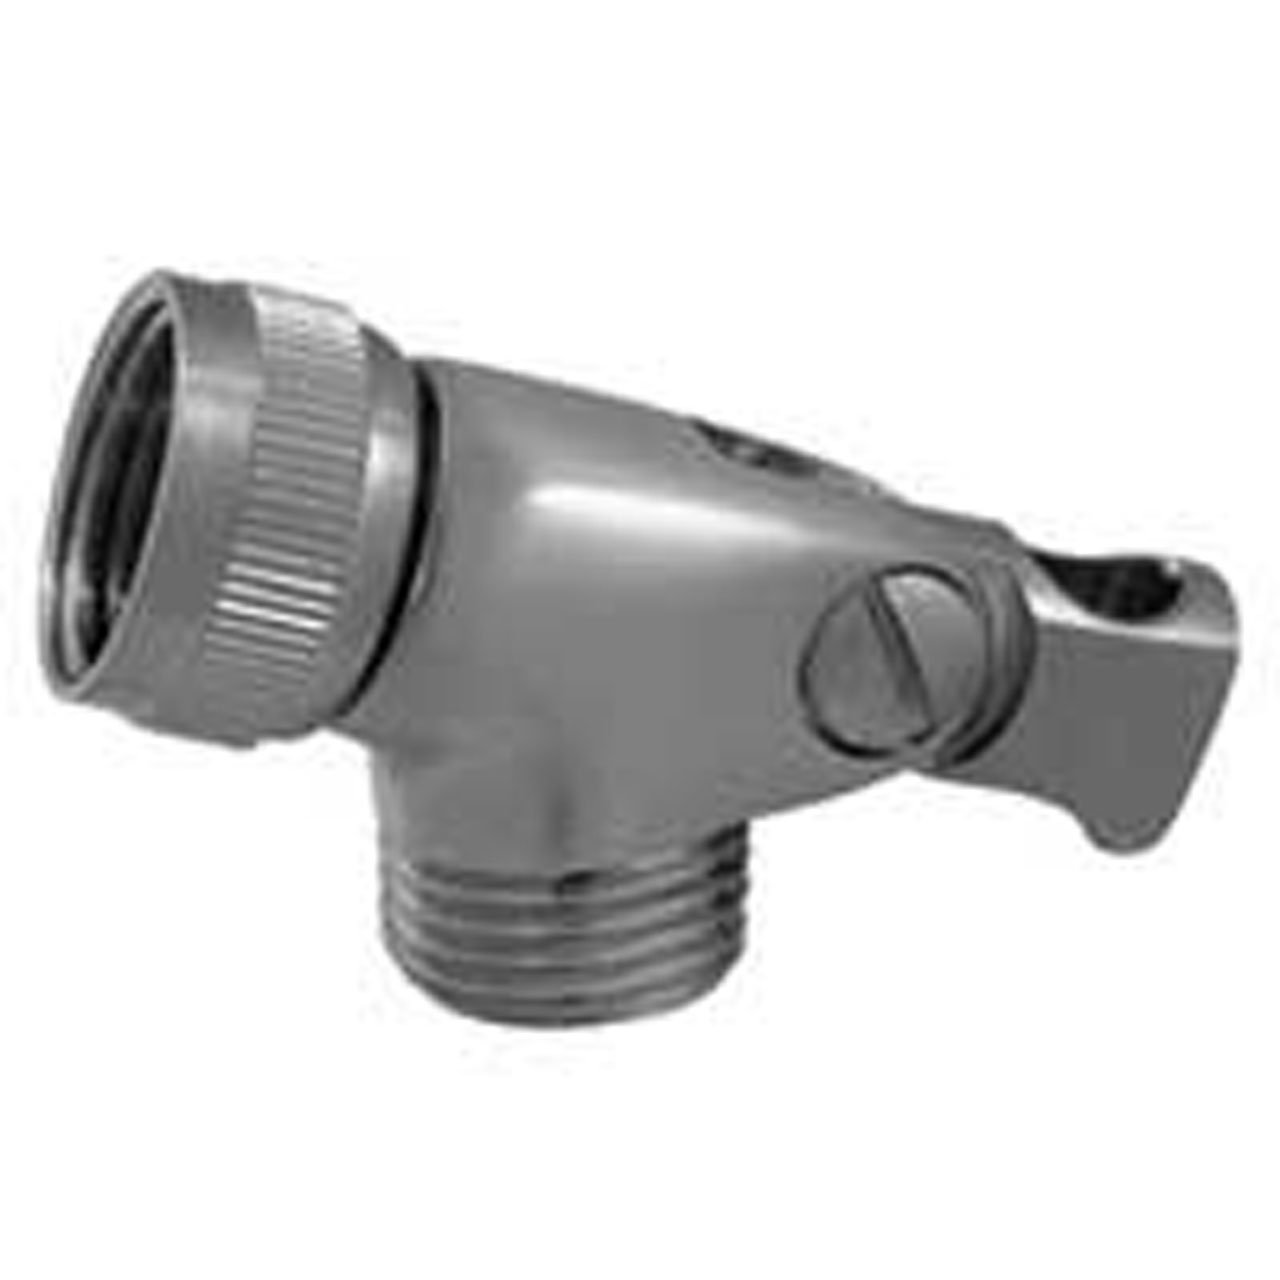 Whitehaus WH172A5-ORB Showerhaus Brass Swivel Hand Spray Connector for Use with Mount Model Number Oil Rubbed Bronze